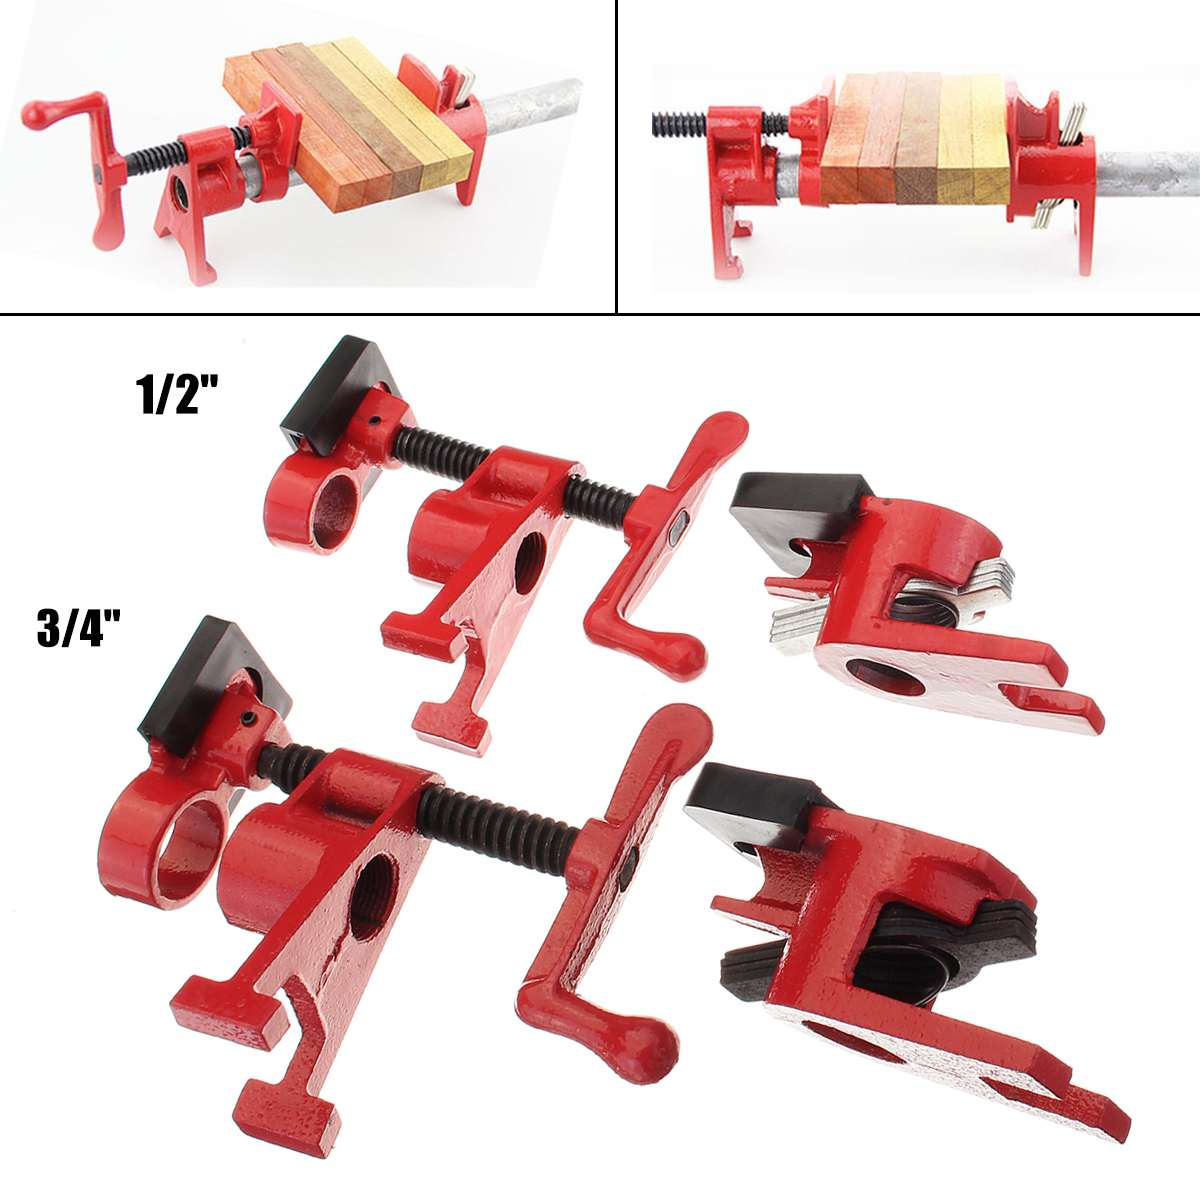 1/2'' 3/4'' inch heavy wood gluing pipe clamp woodworking